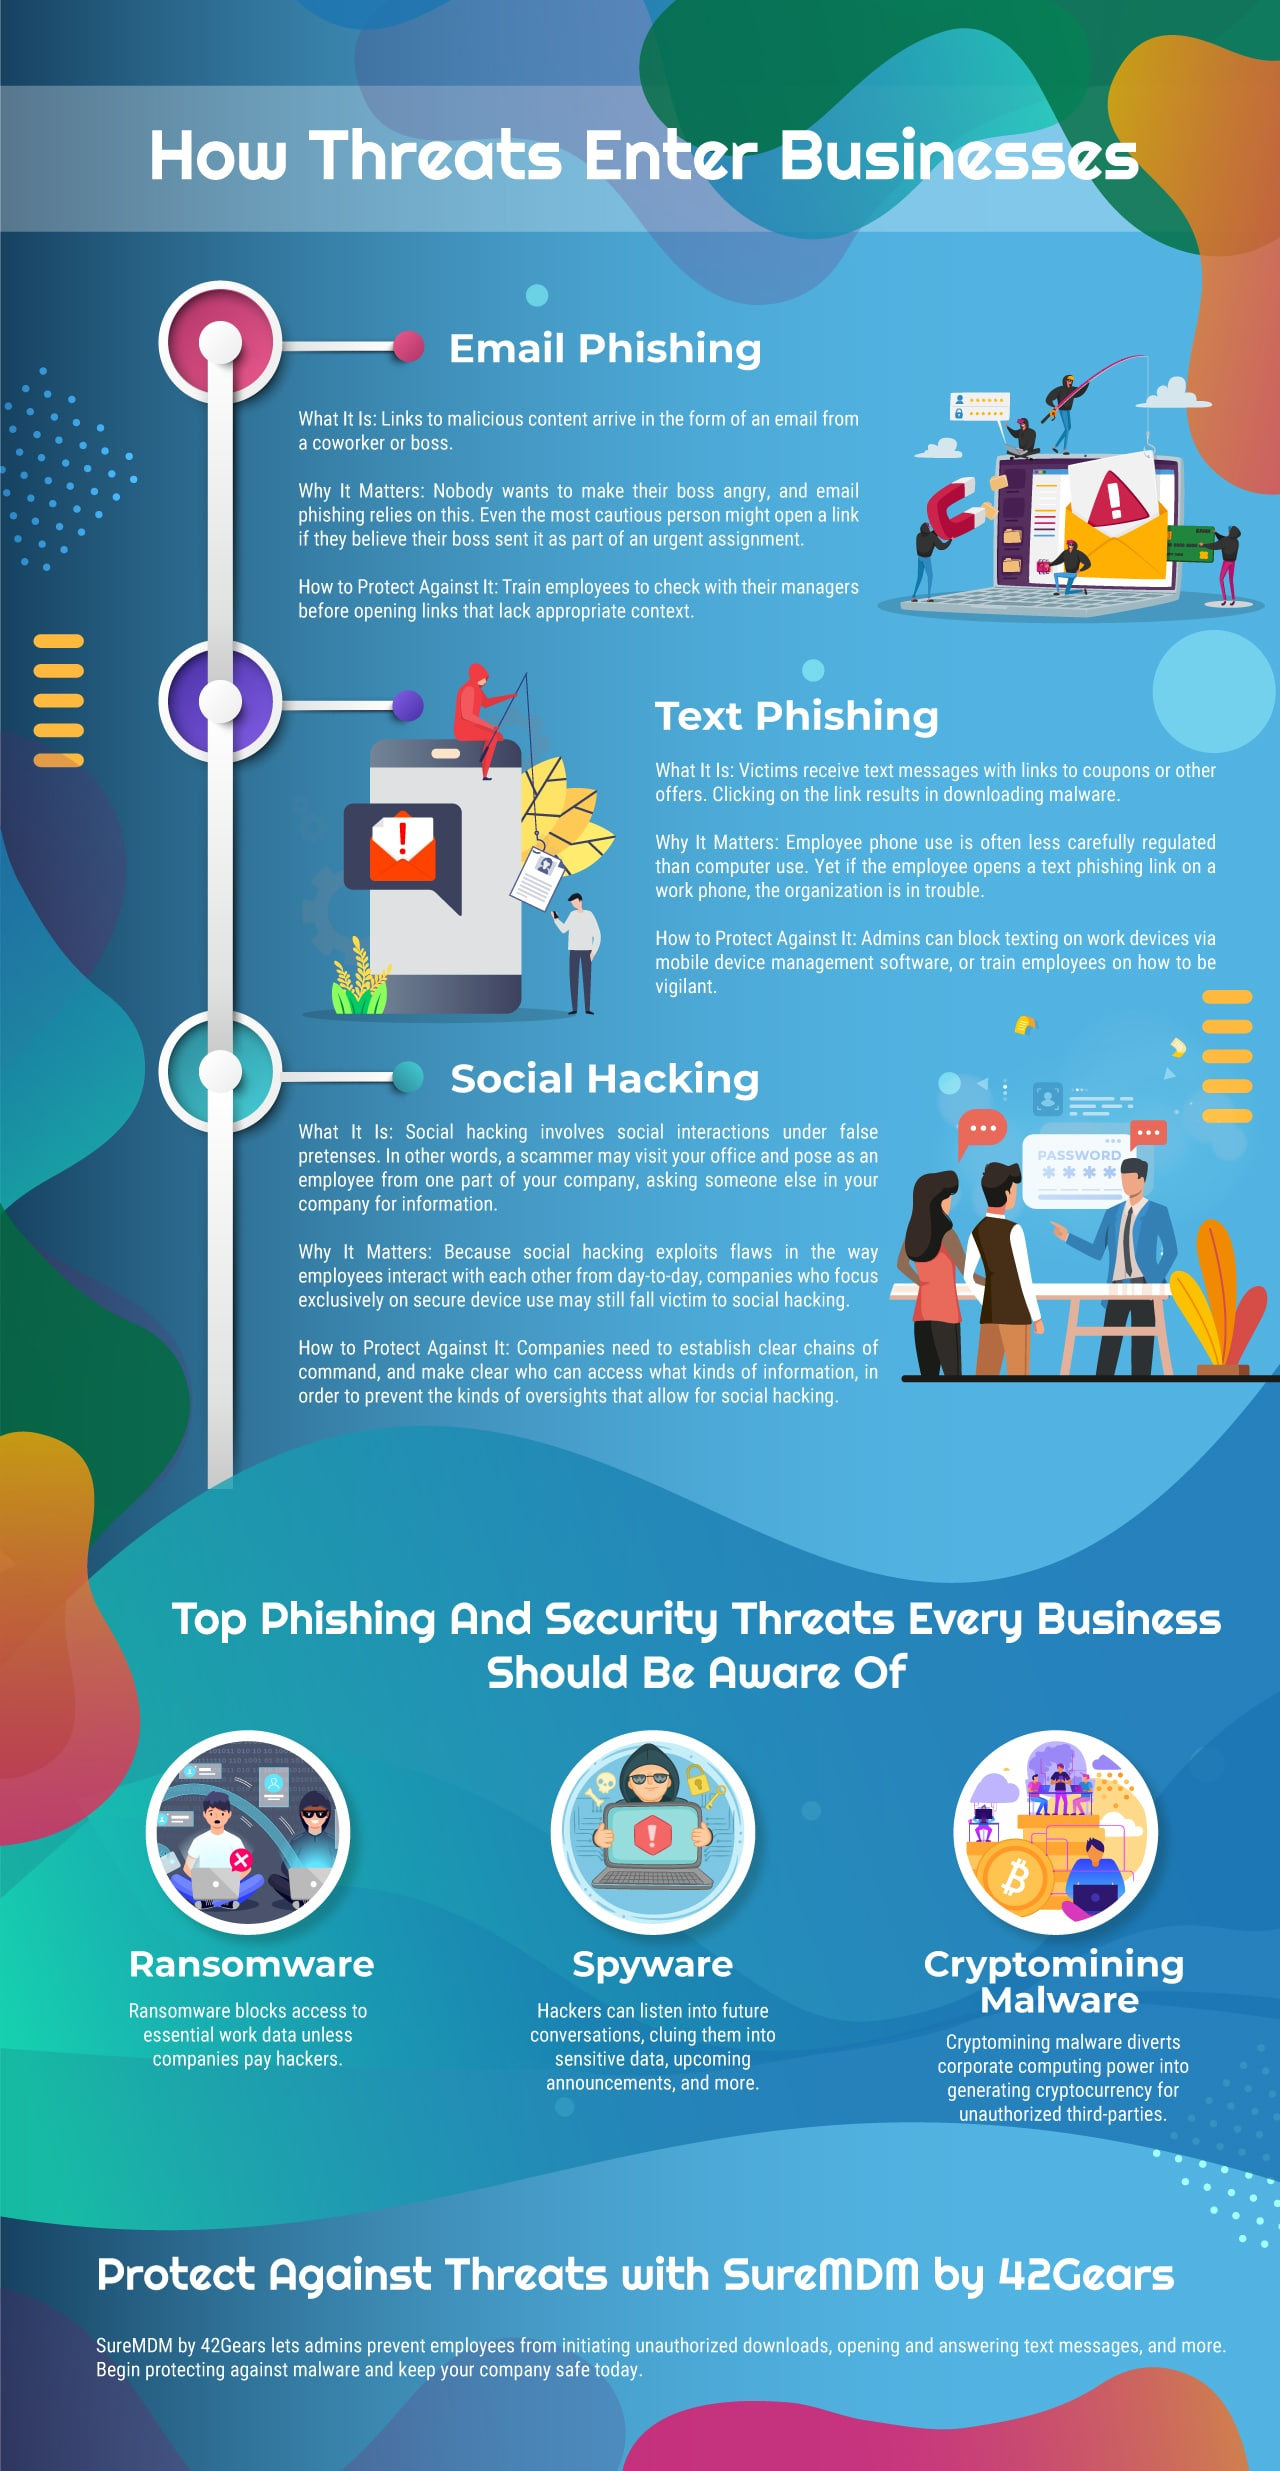 Top Phishing And Security Threats Every Business Should Know